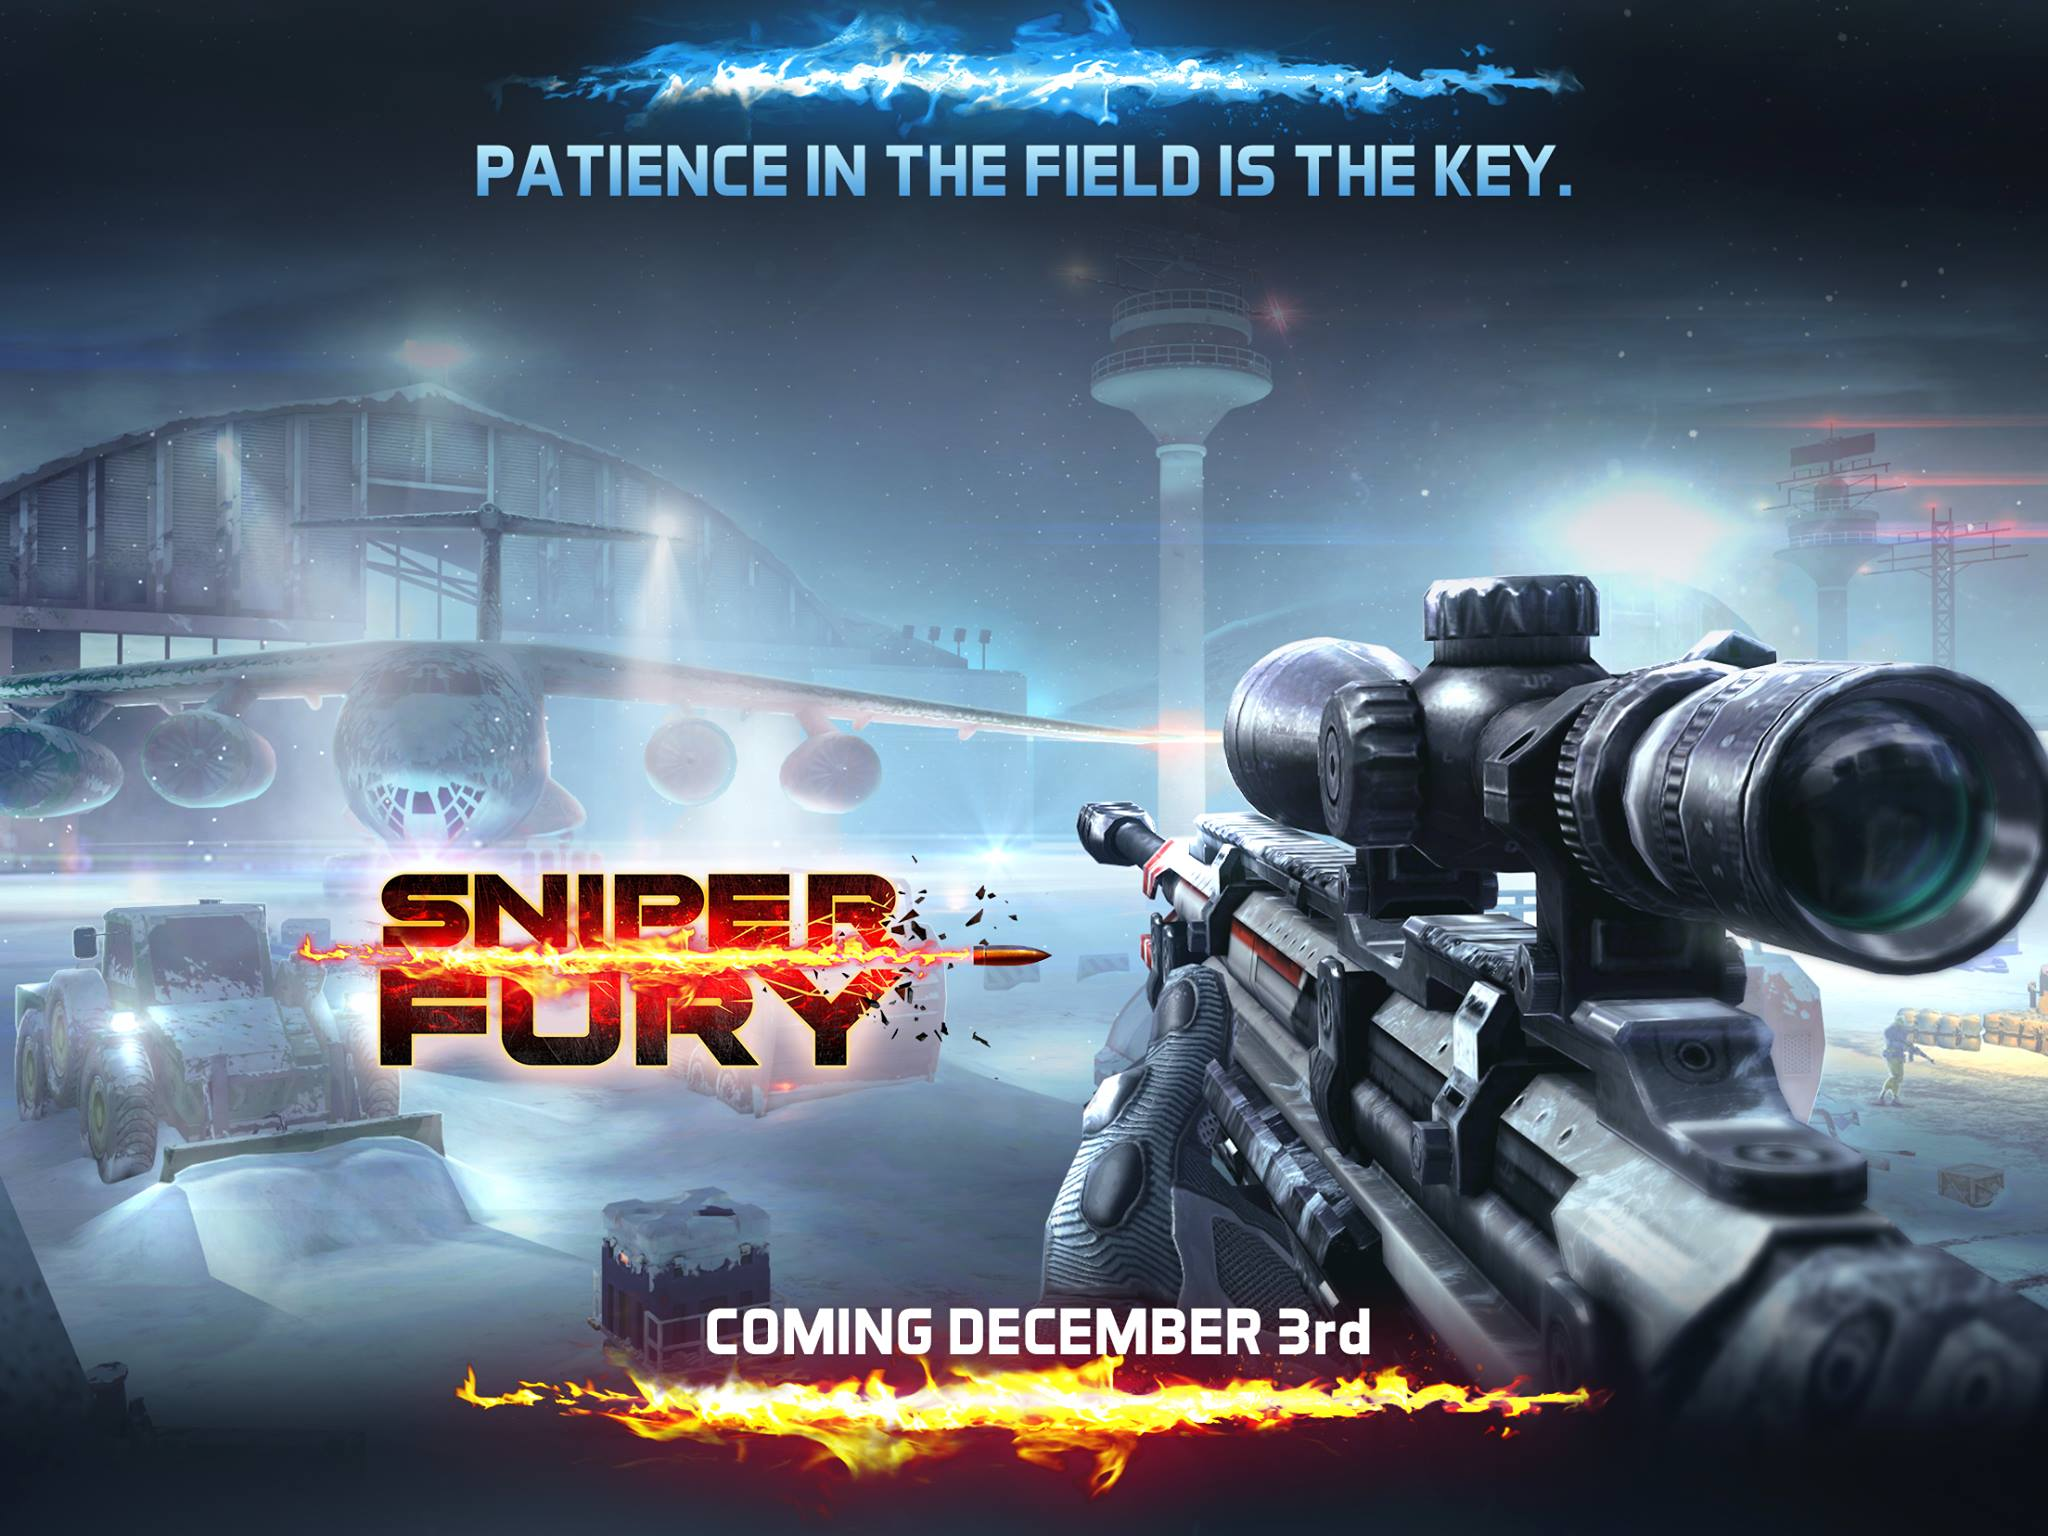 Sniper Fury is no longer coming out this week - delayed until December 3rd